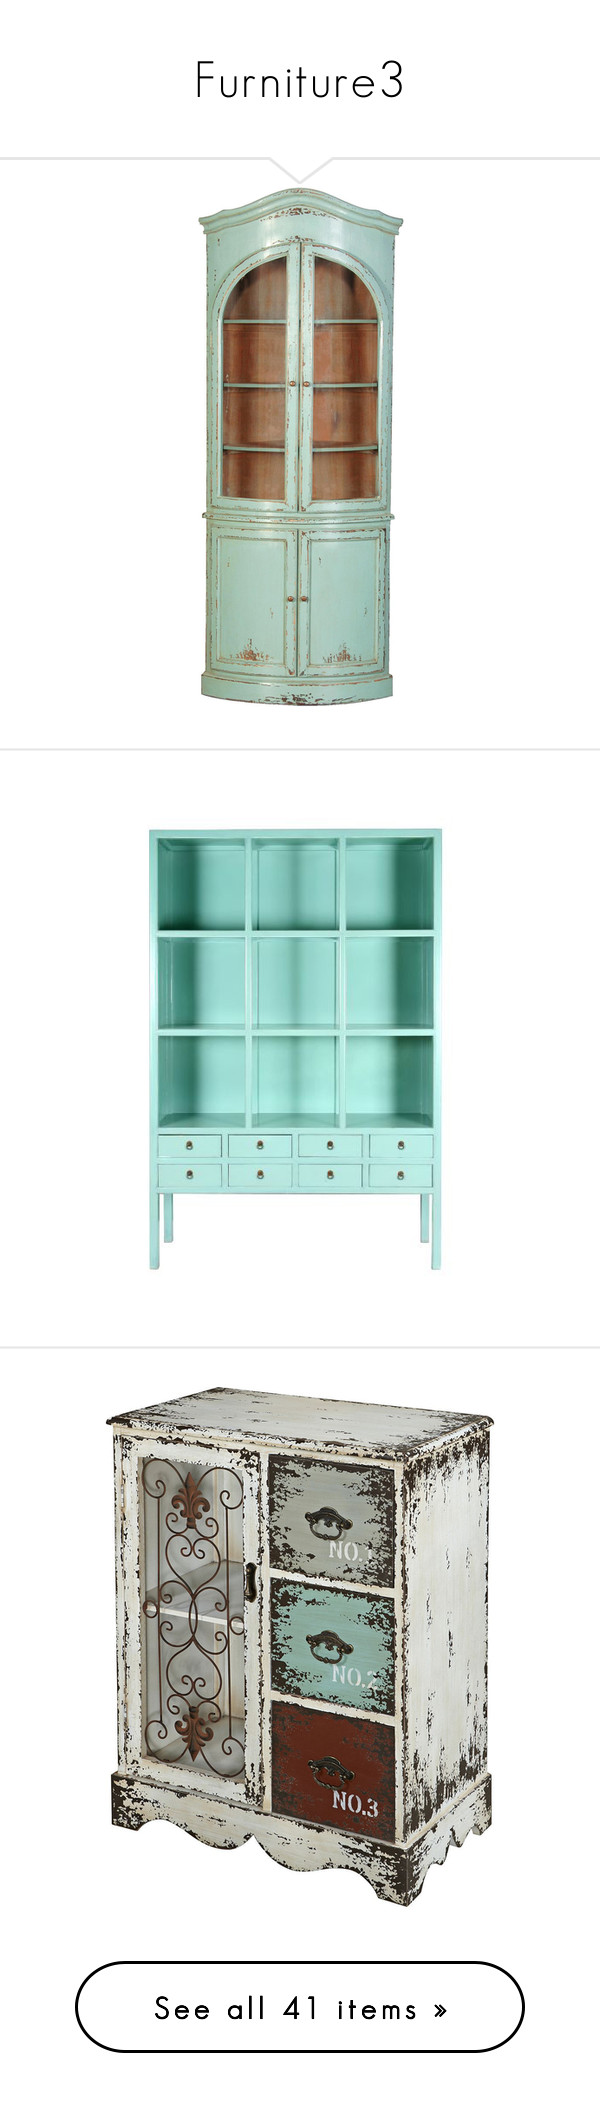 """Furniture3"" by dream-ended-this-way ❤ liked on Polyvore featuring home, furniture, storage & shelves, cabinet, interior design, handmade furniture, turquoise furniture, mahogany furniture, hand made furniture and french furniture"